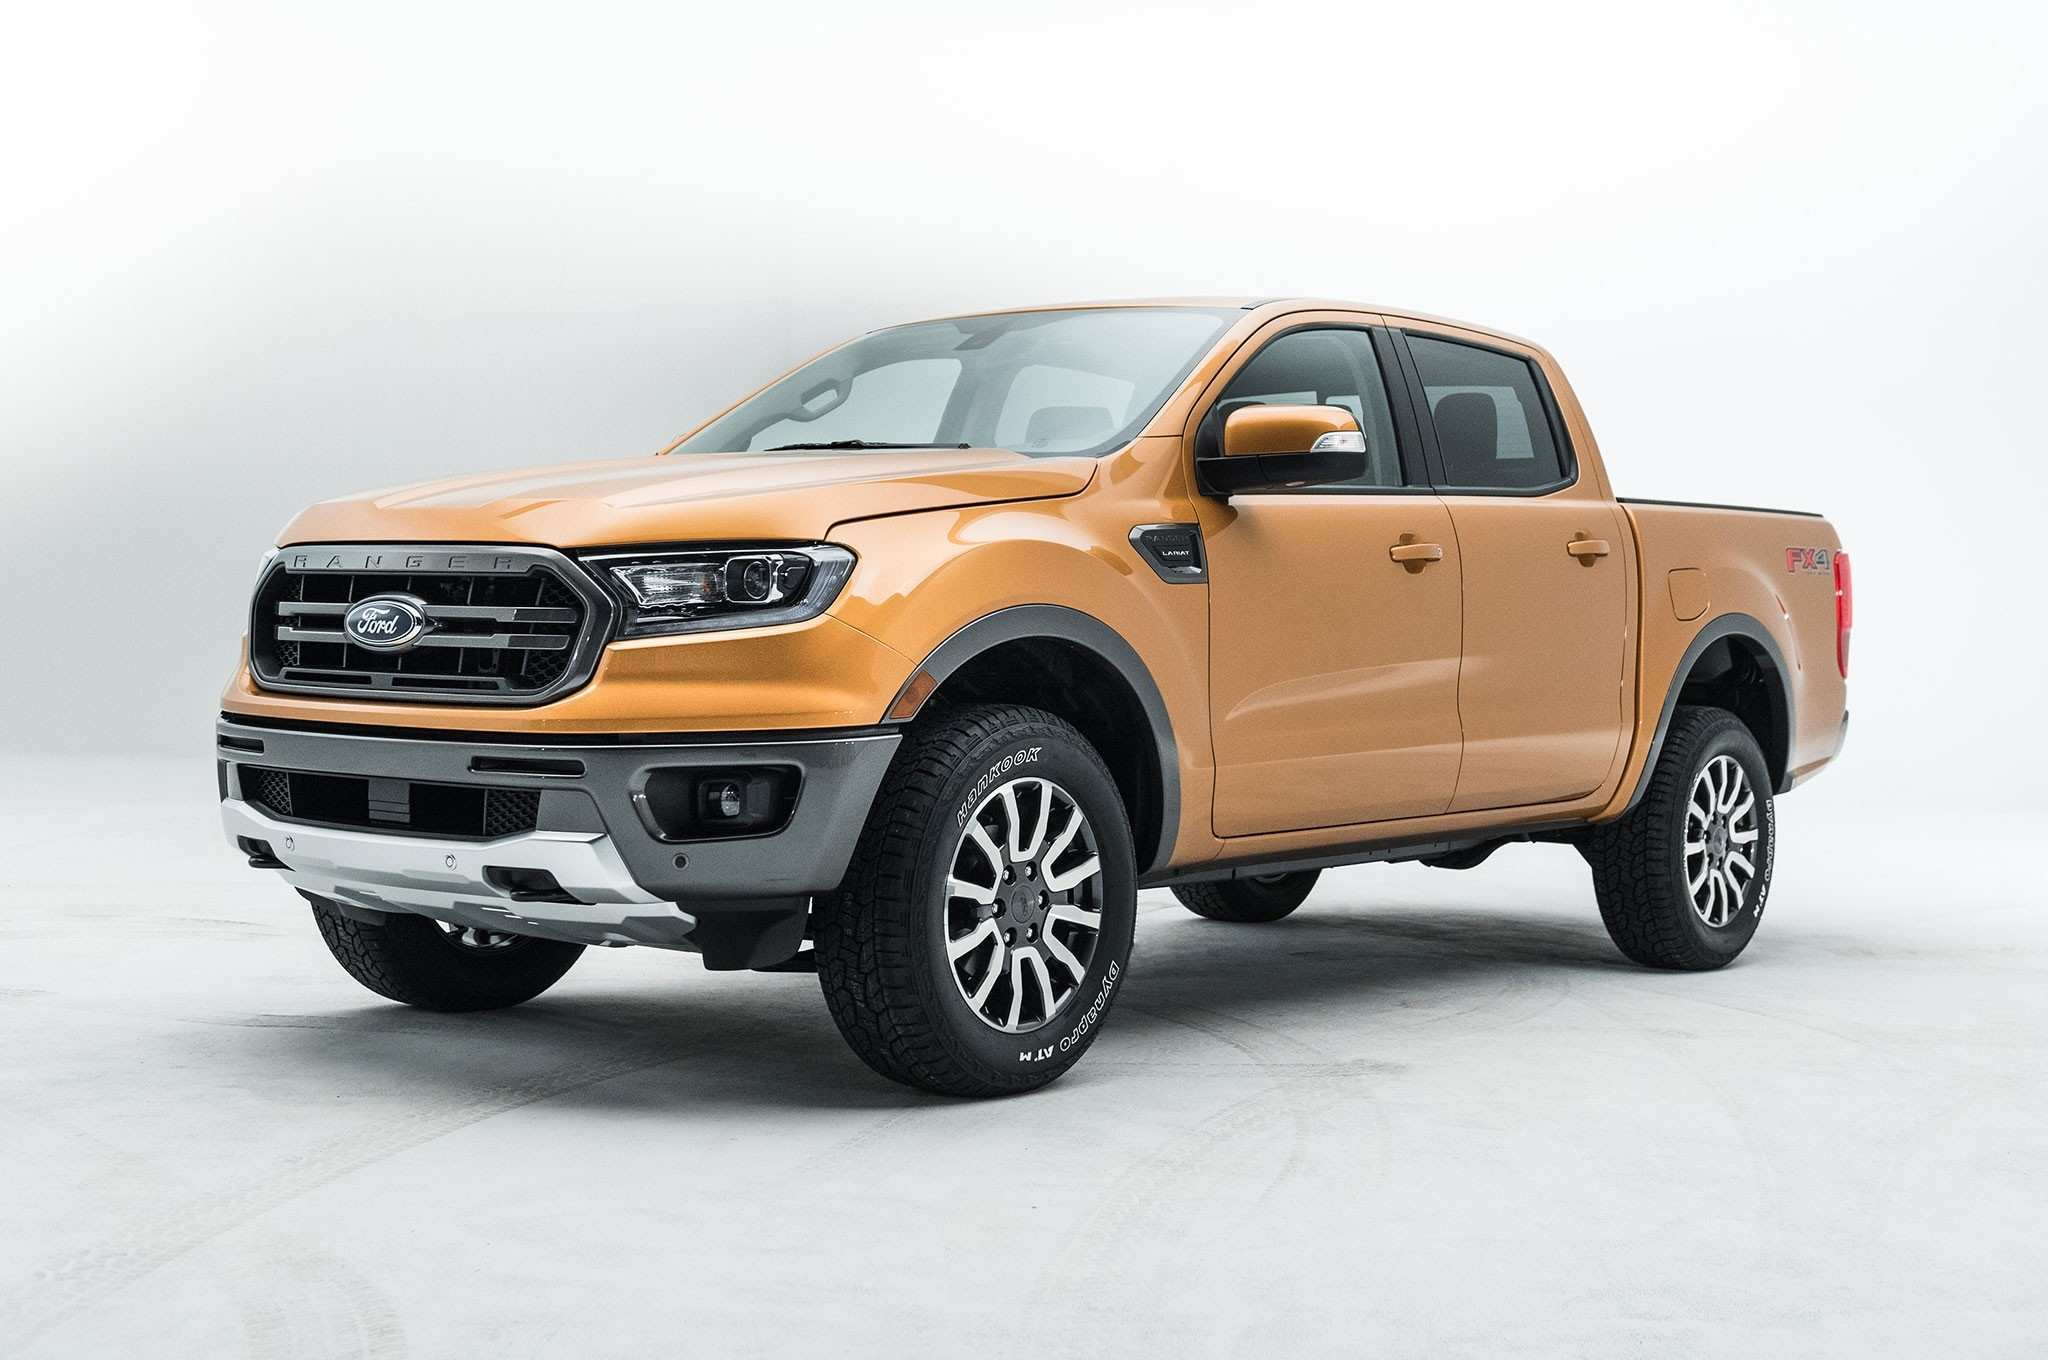 77 New New Release Date Of 2019 Ford Ranger First Drive Wallpaper with New Release Date Of 2019 Ford Ranger First Drive